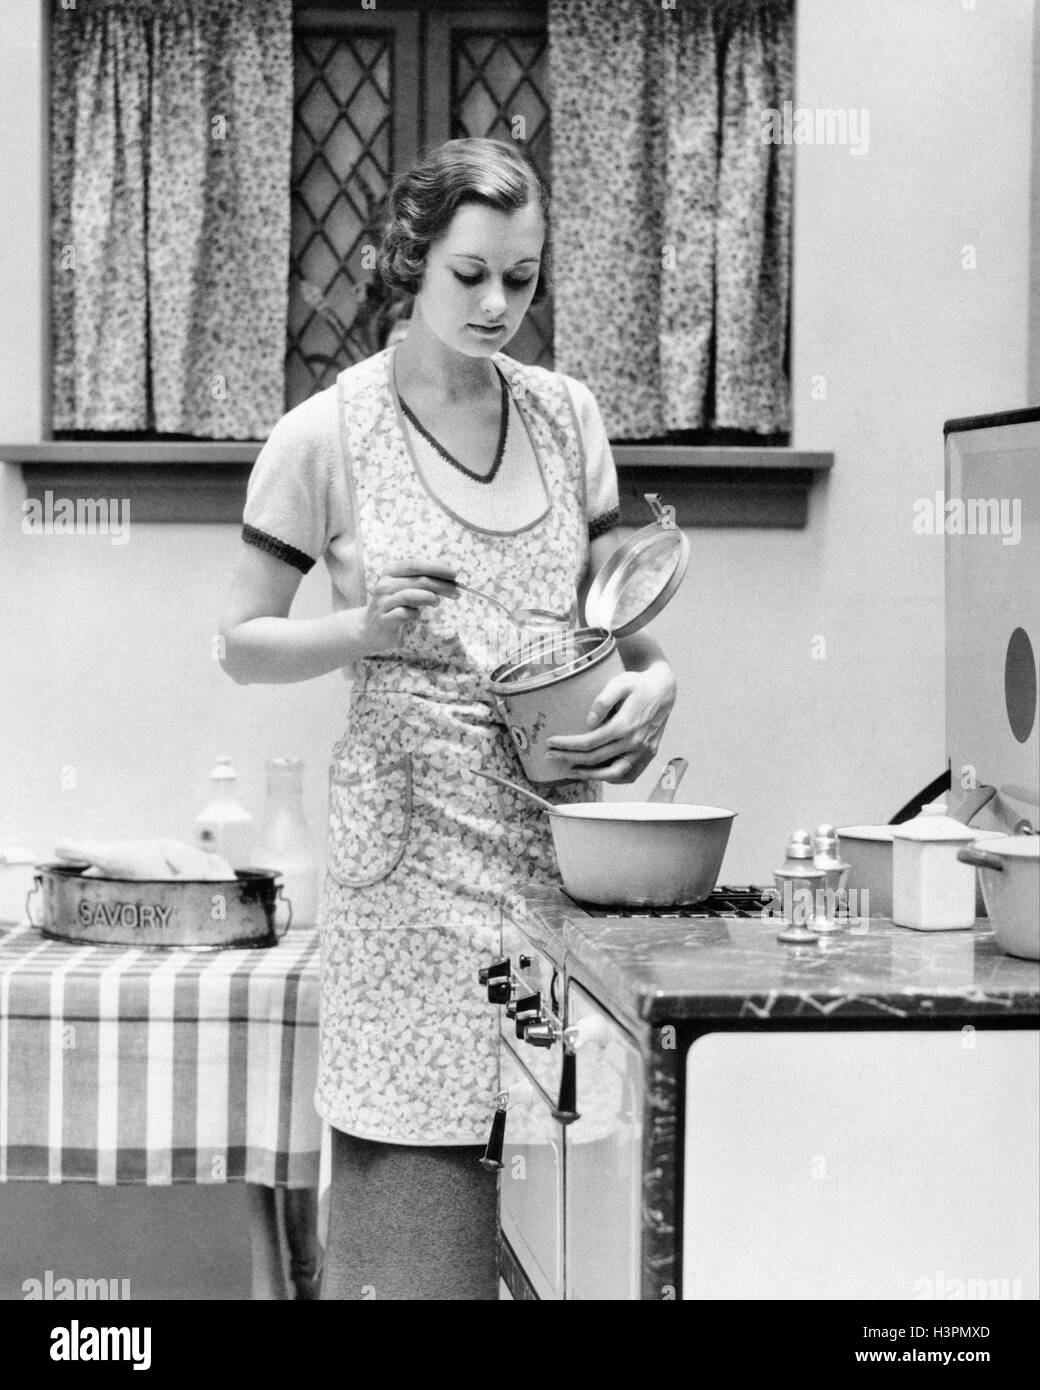 Vintage Schürze Küche 1920s 1930s Woman In Kitchen Working Cooking On Stove